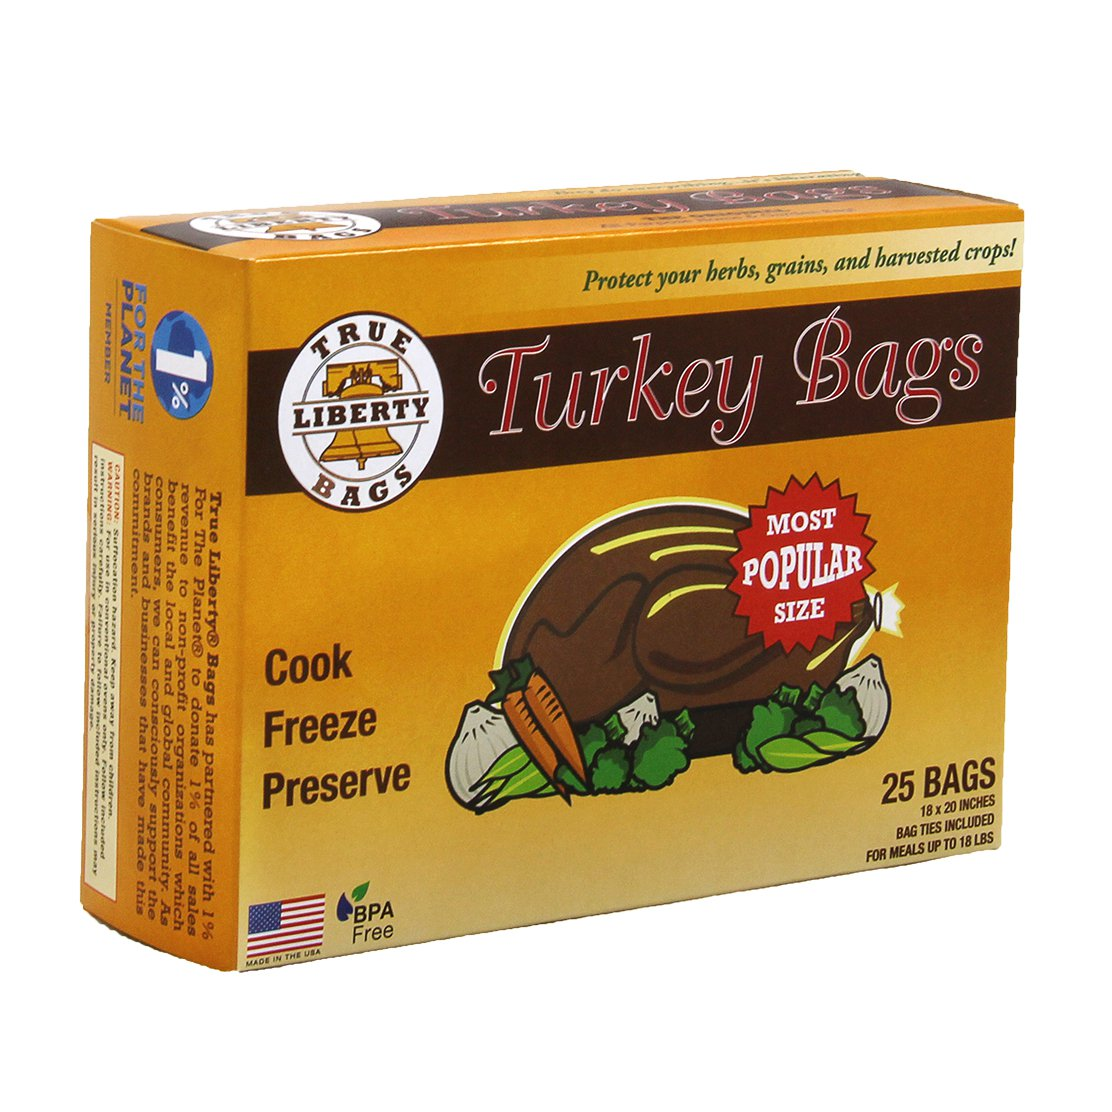 True Liberty Home & Garden Freezer Preservation Turkey Bags, 25 Pack | TLBT25